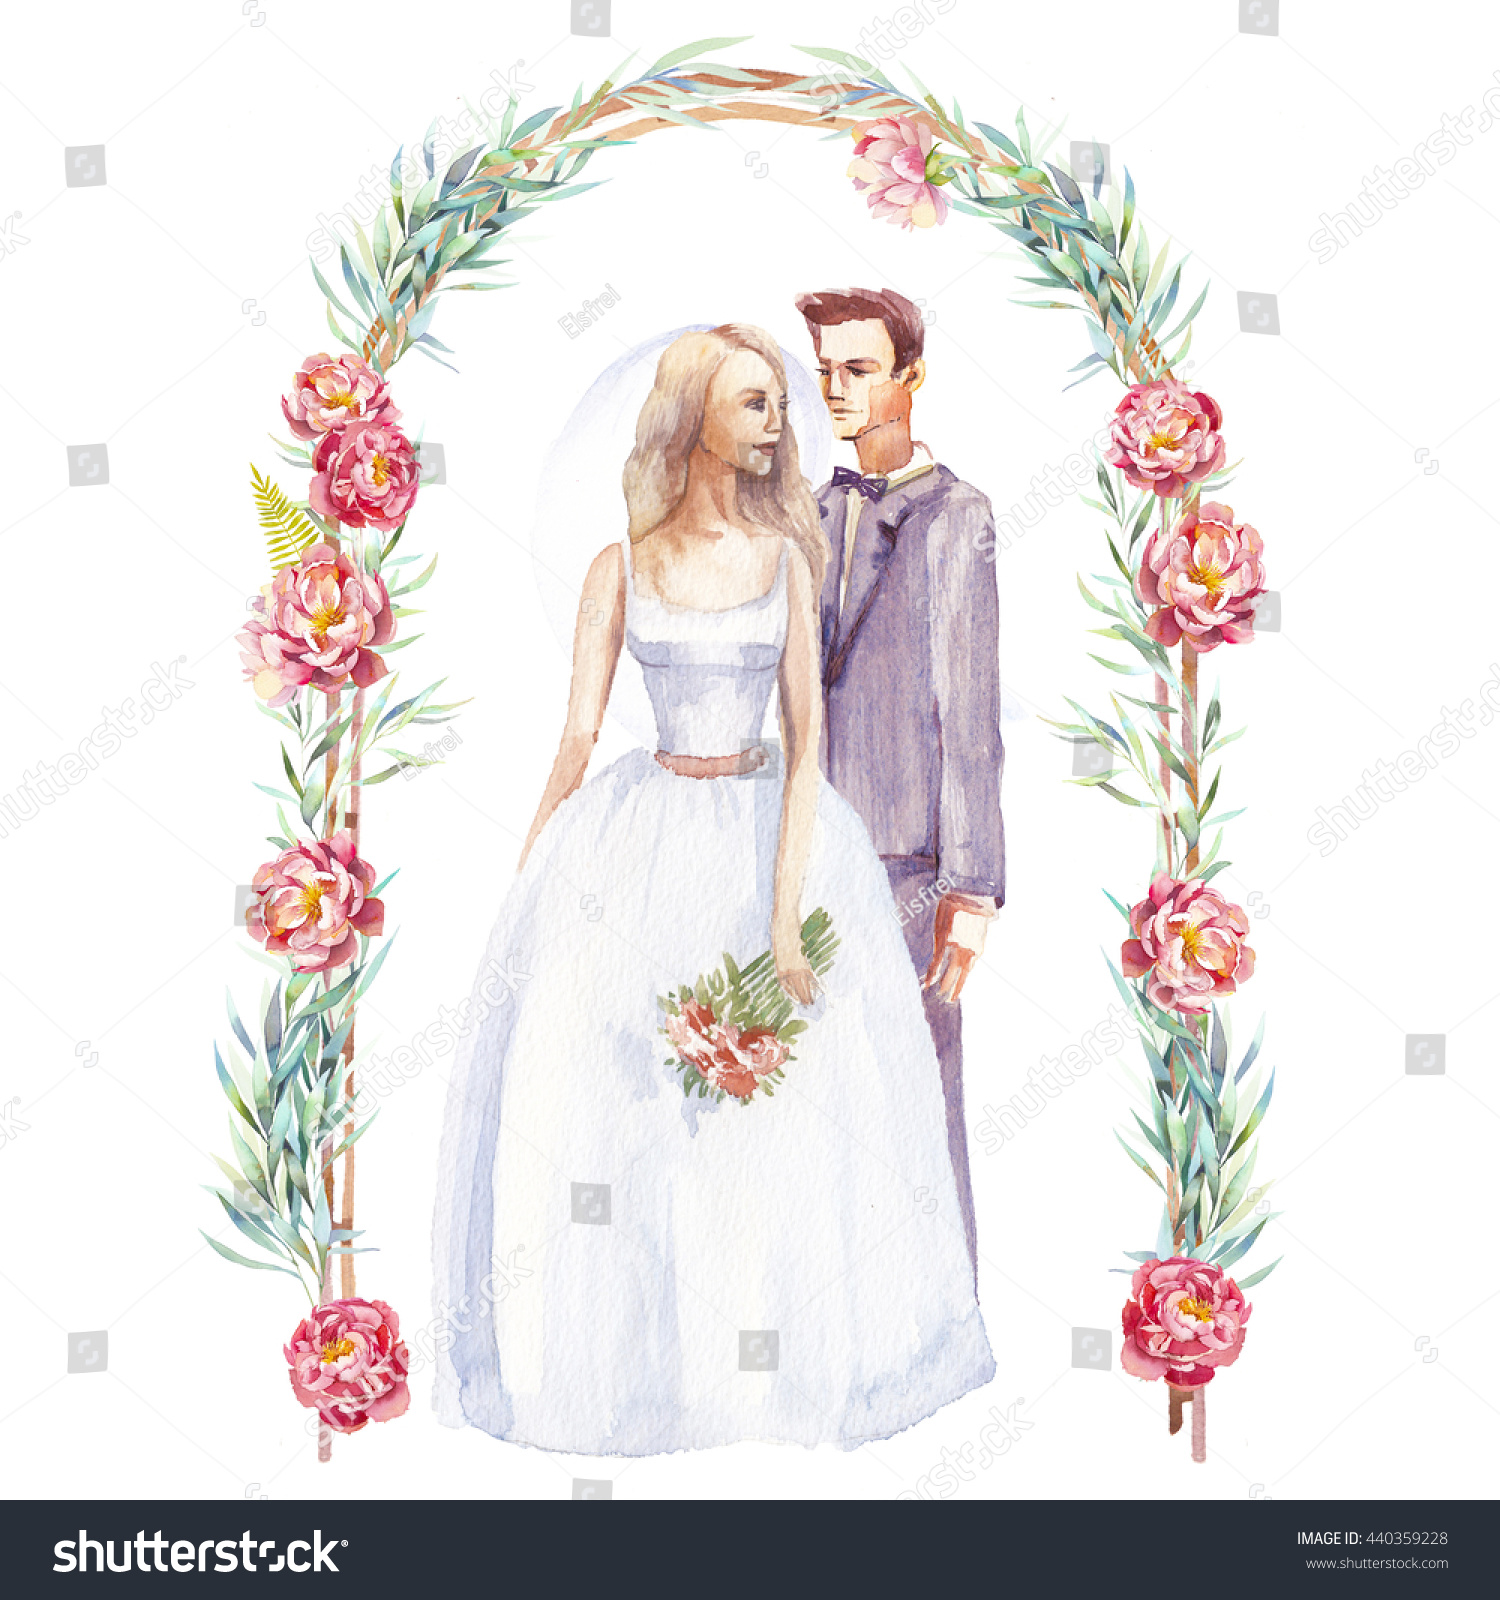 Just Married Couple Watercolor Illustration Bride Stock ...